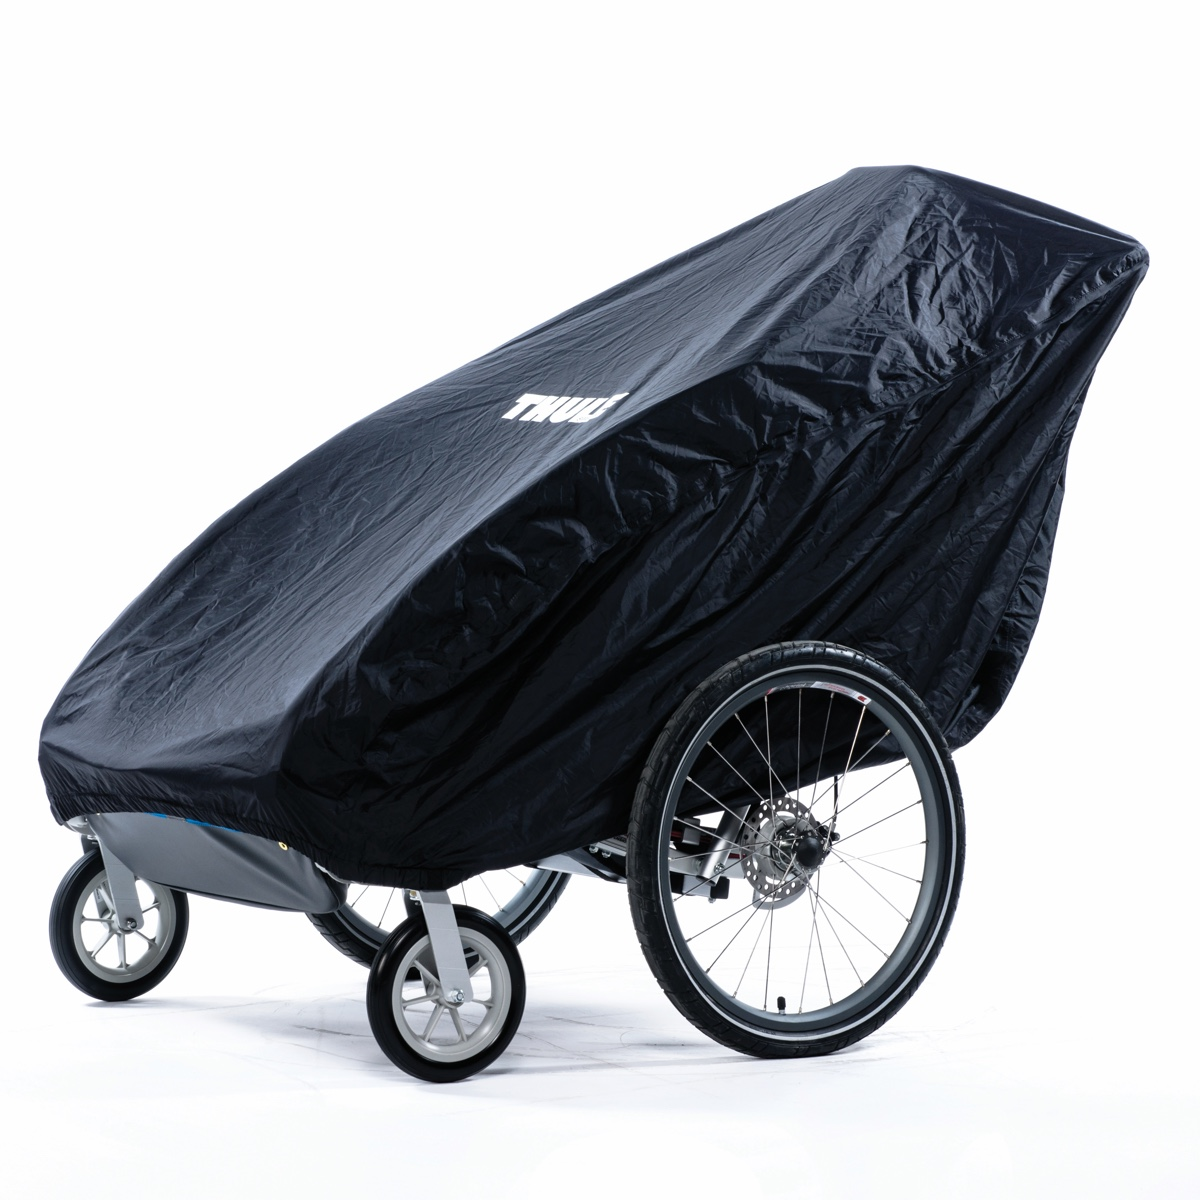 Durable fabric cover protects your Thule child carrier while not in use.